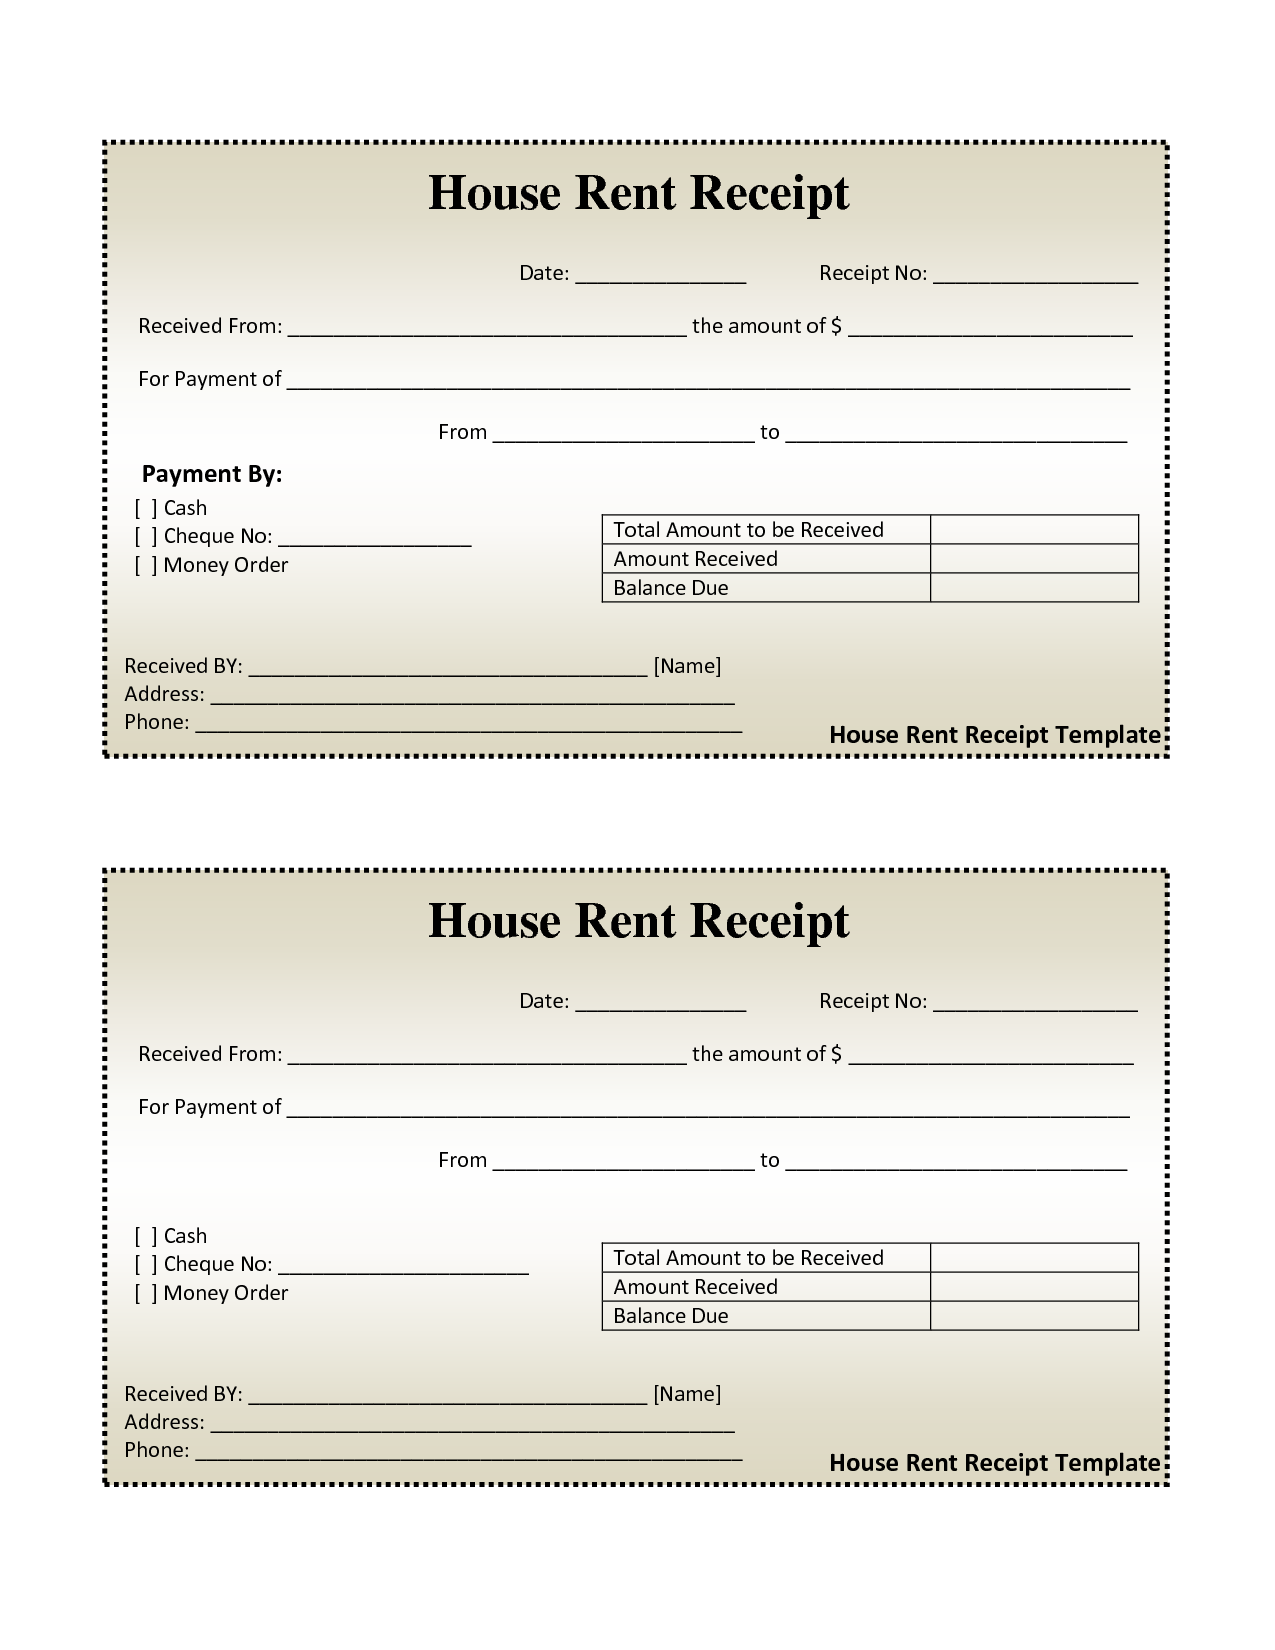 Free House Rental Invoice | House Rent Receipt Template   DOC  House For Rent Template